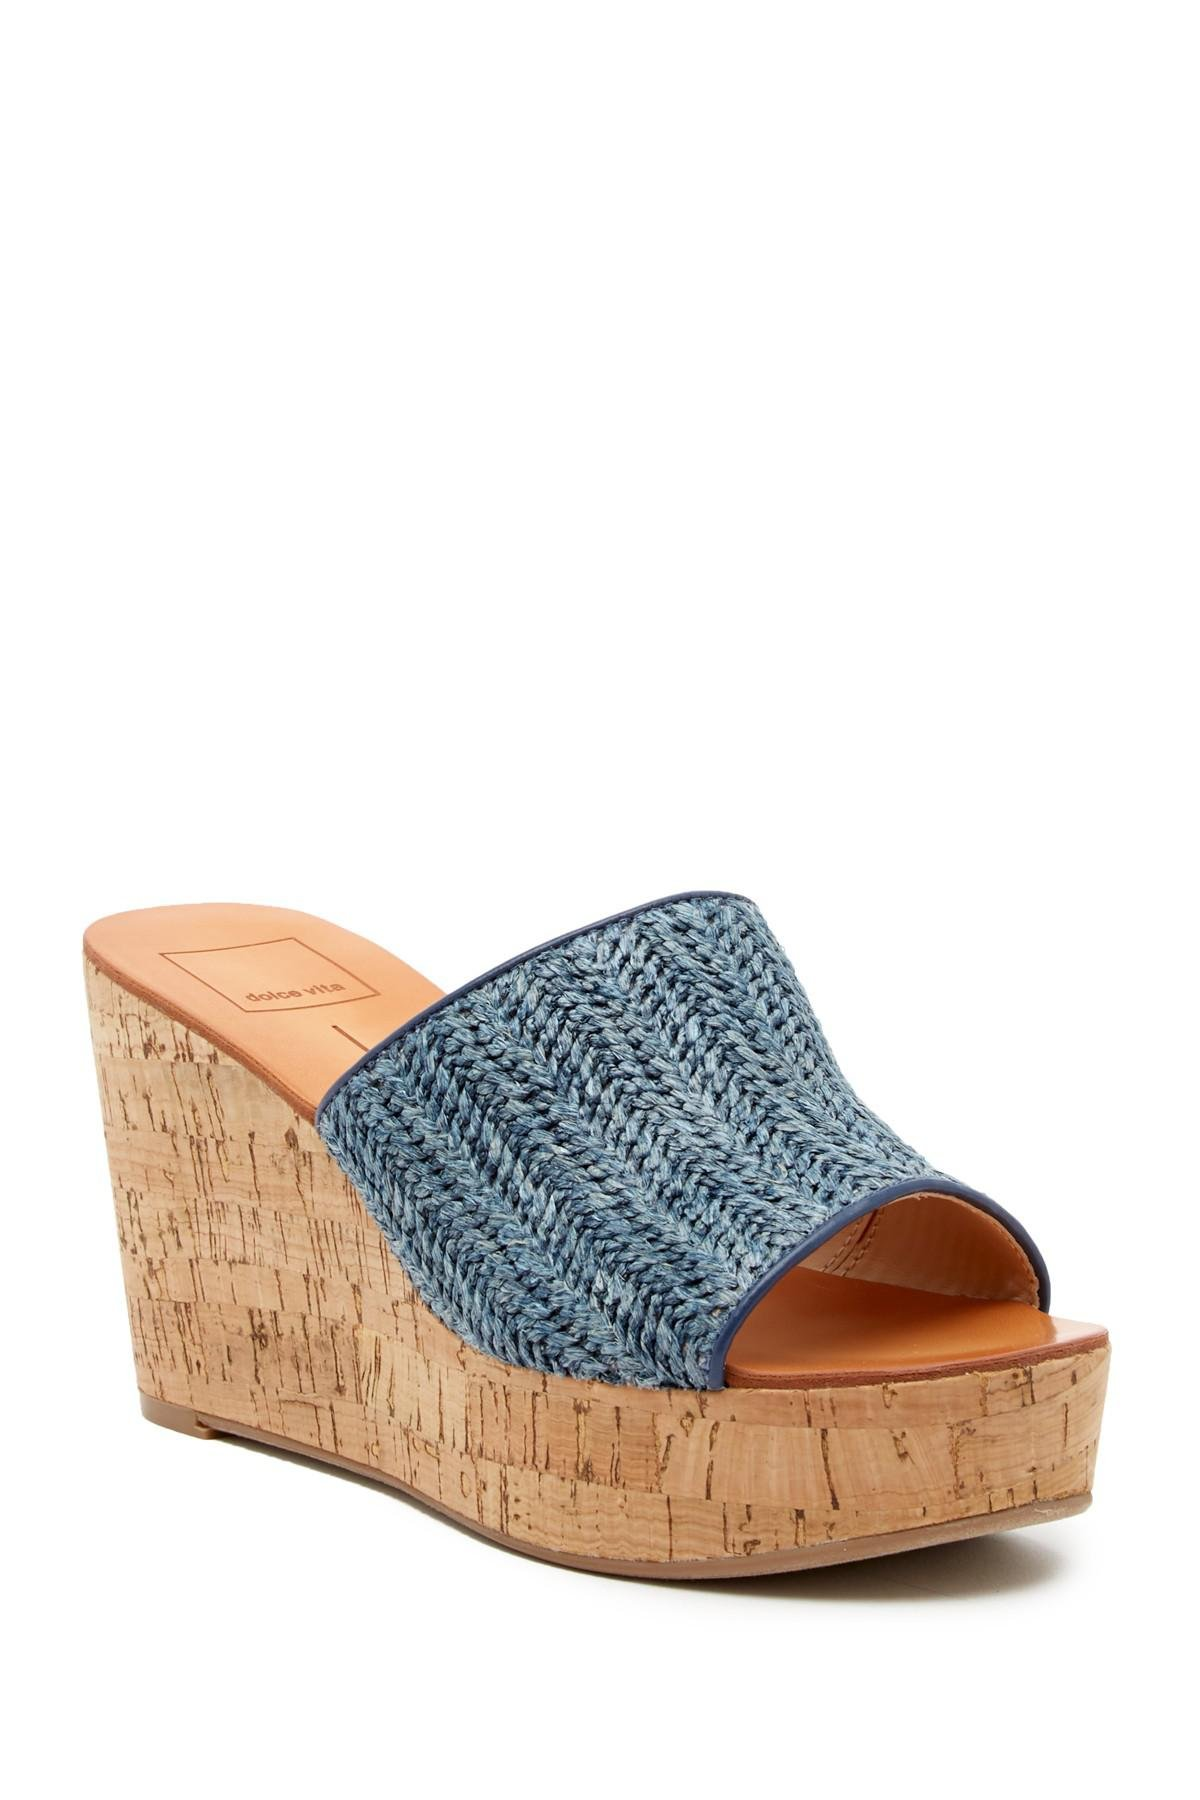 9b5b4c6902a Dolce Vita Barkley Cork Wedge Sandal in Blue - Lyst